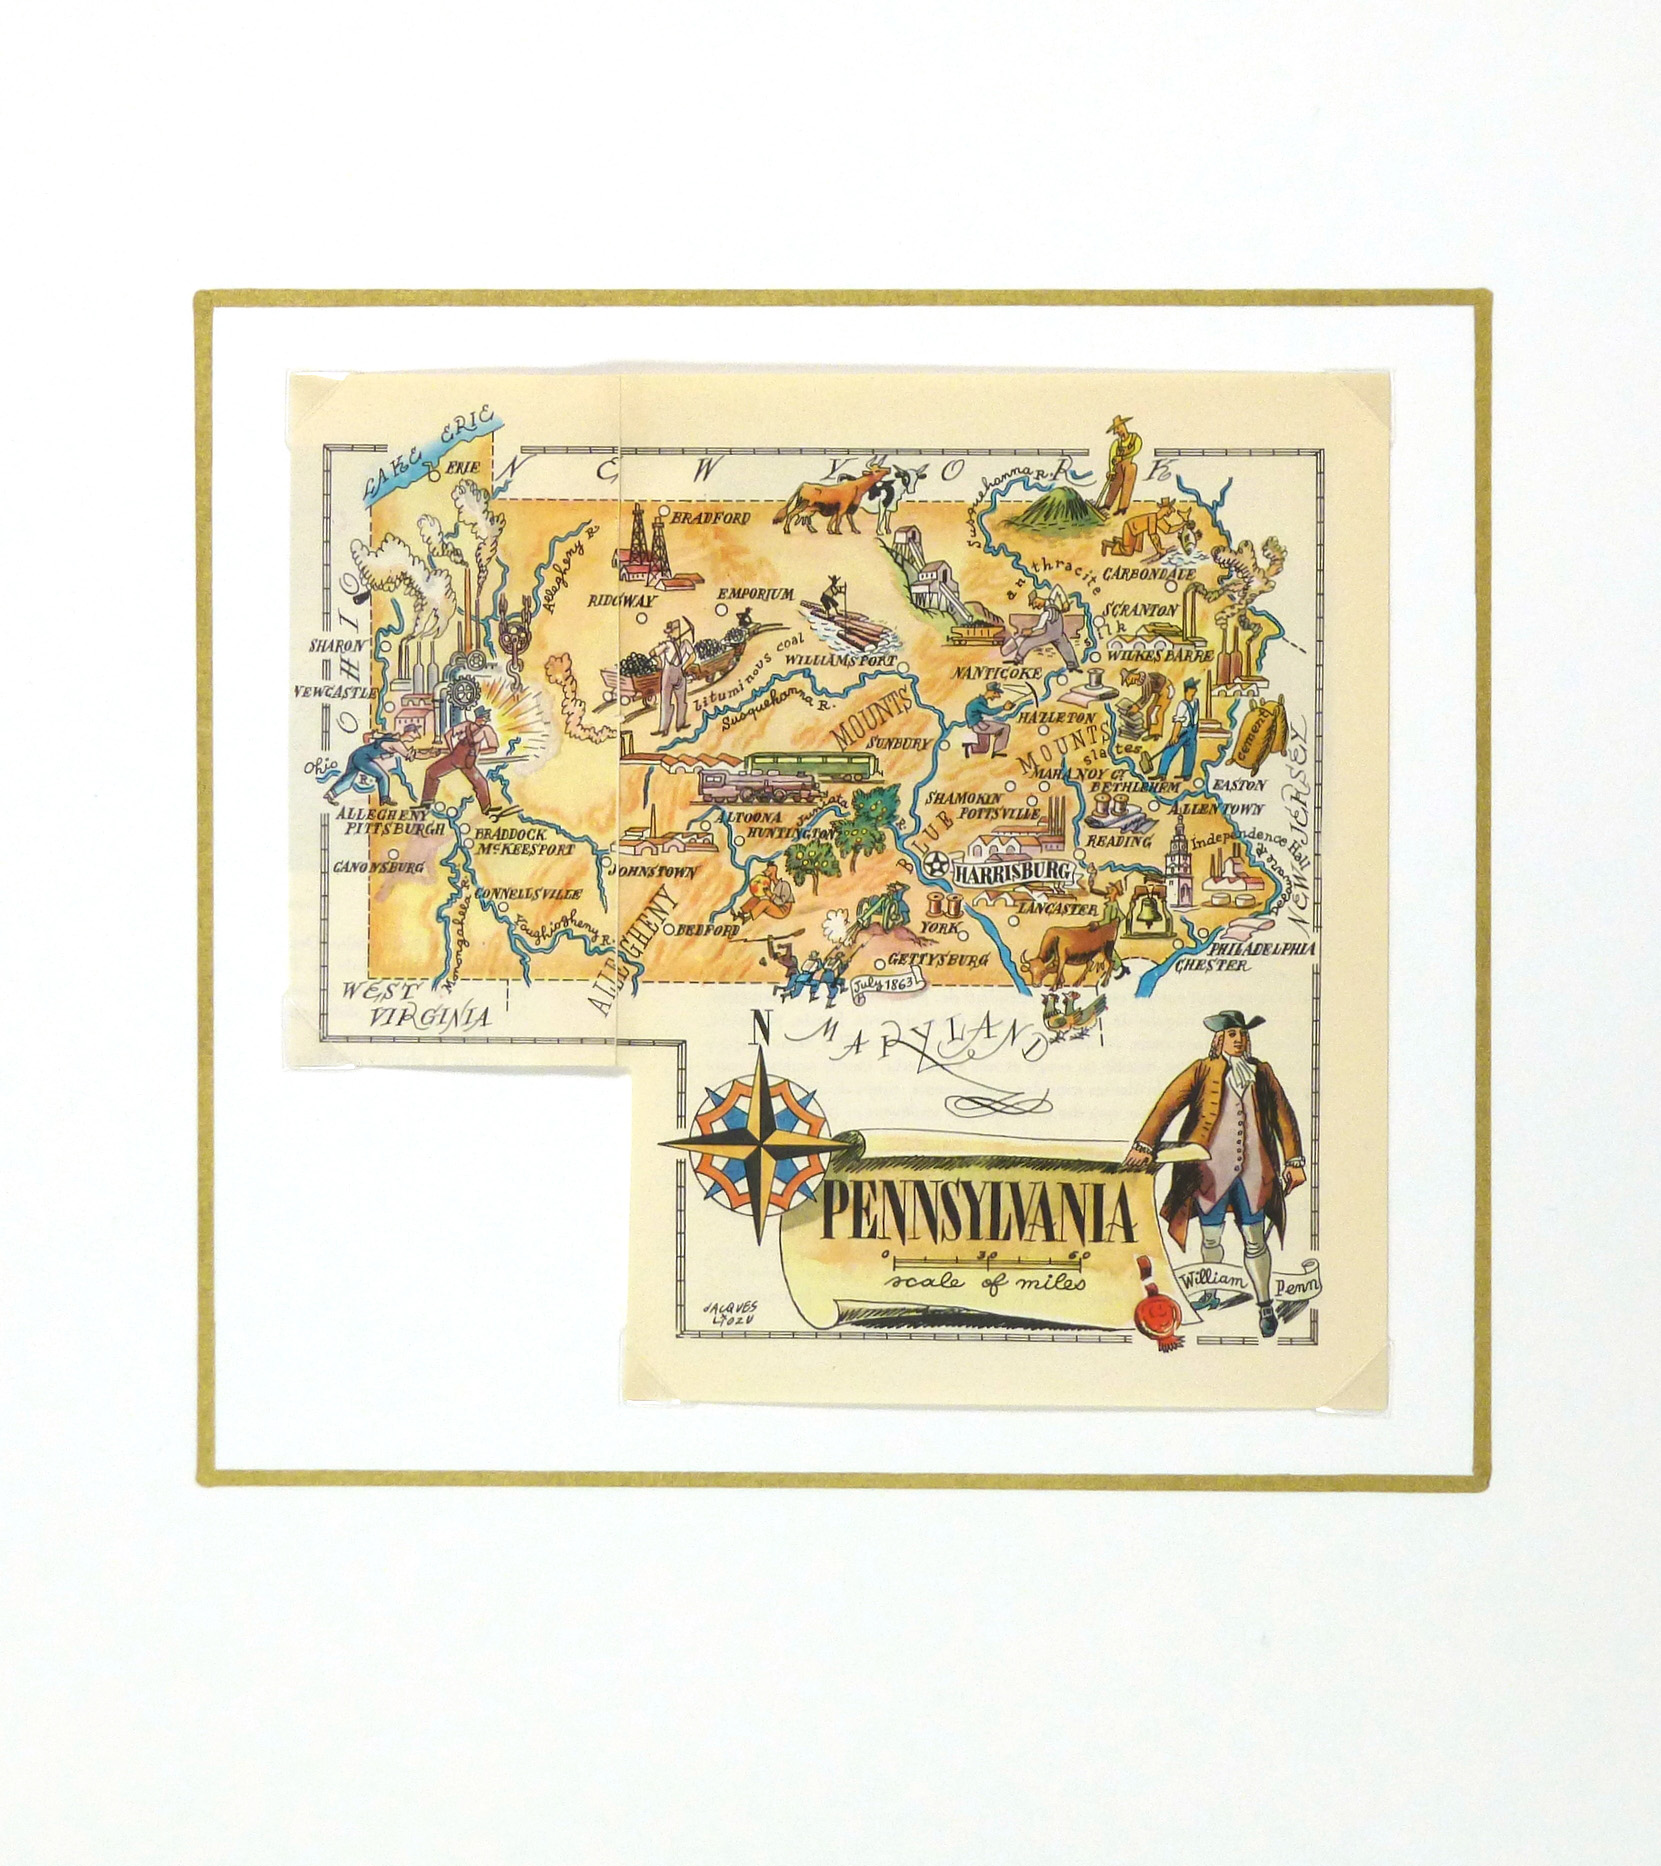 Pennsylvania Pictorial Map, 1946-matted-6275K